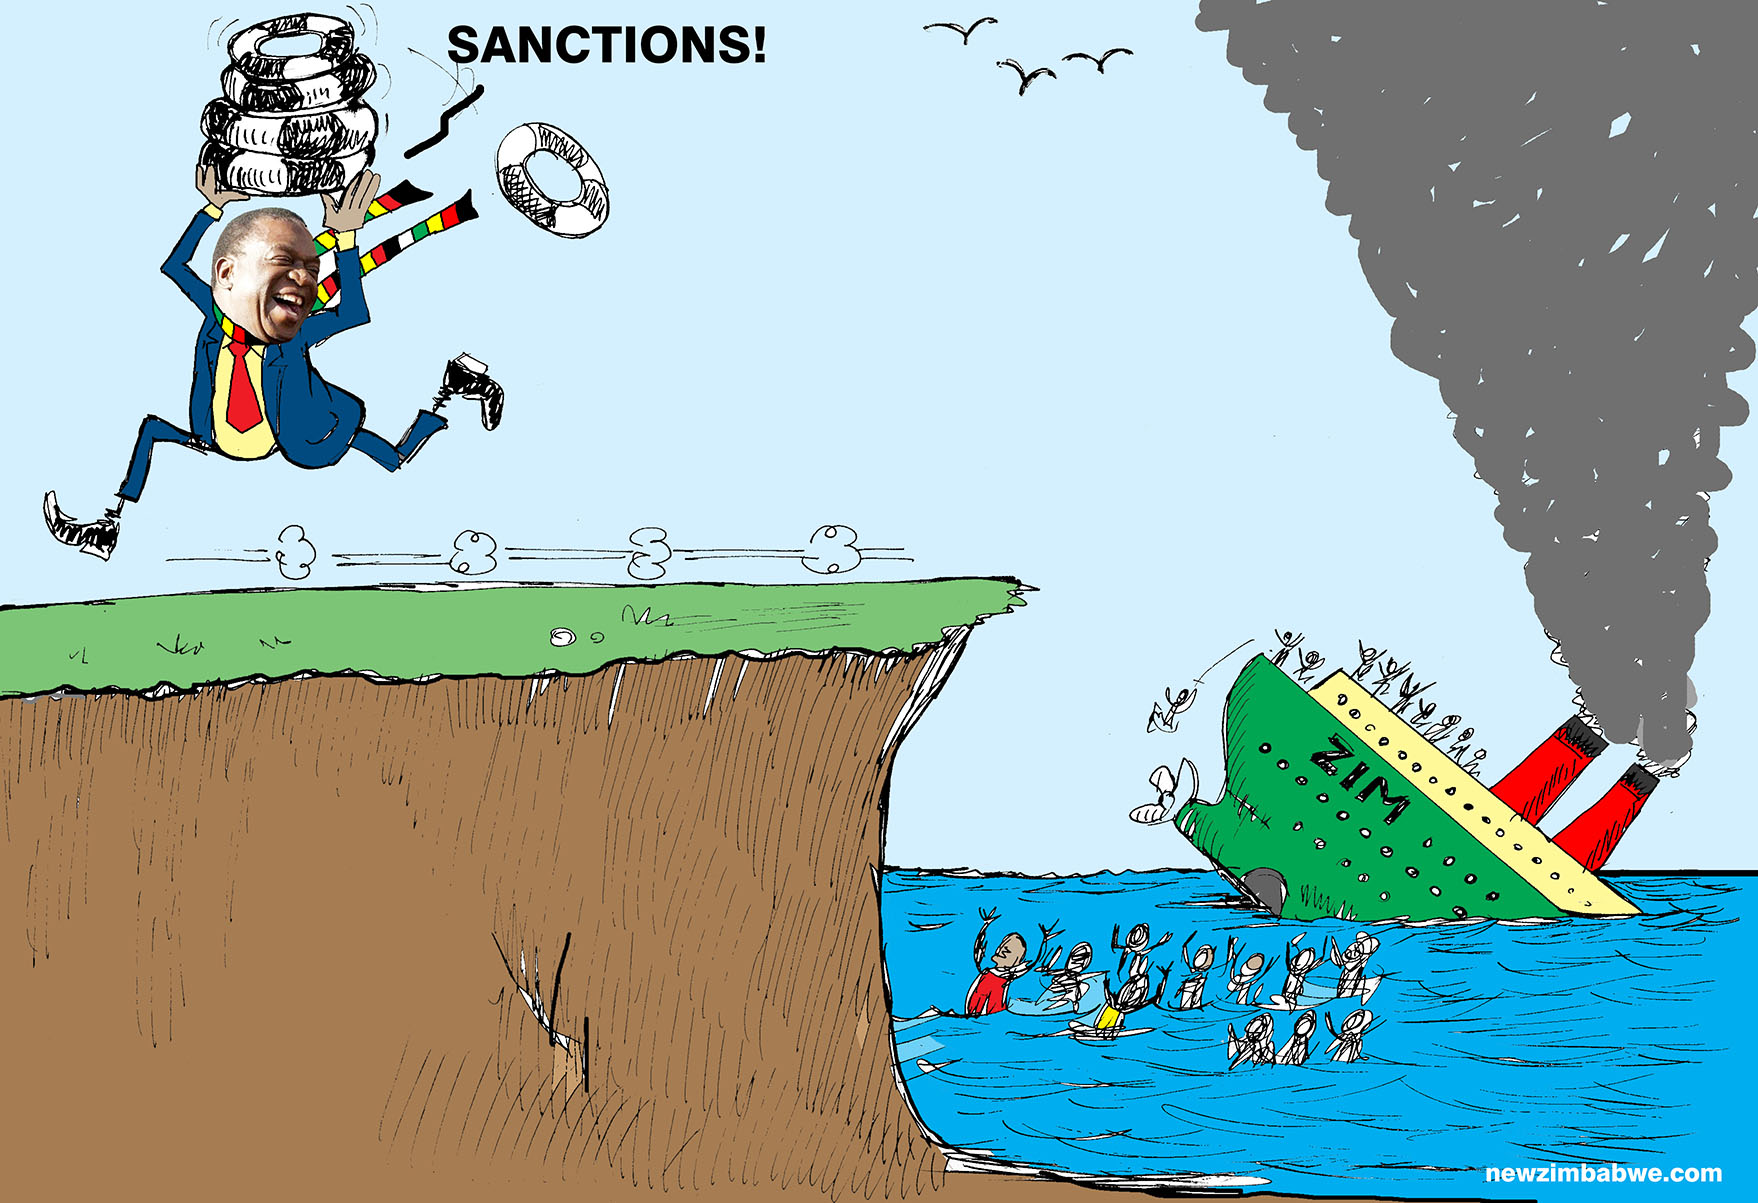 It is sanctions